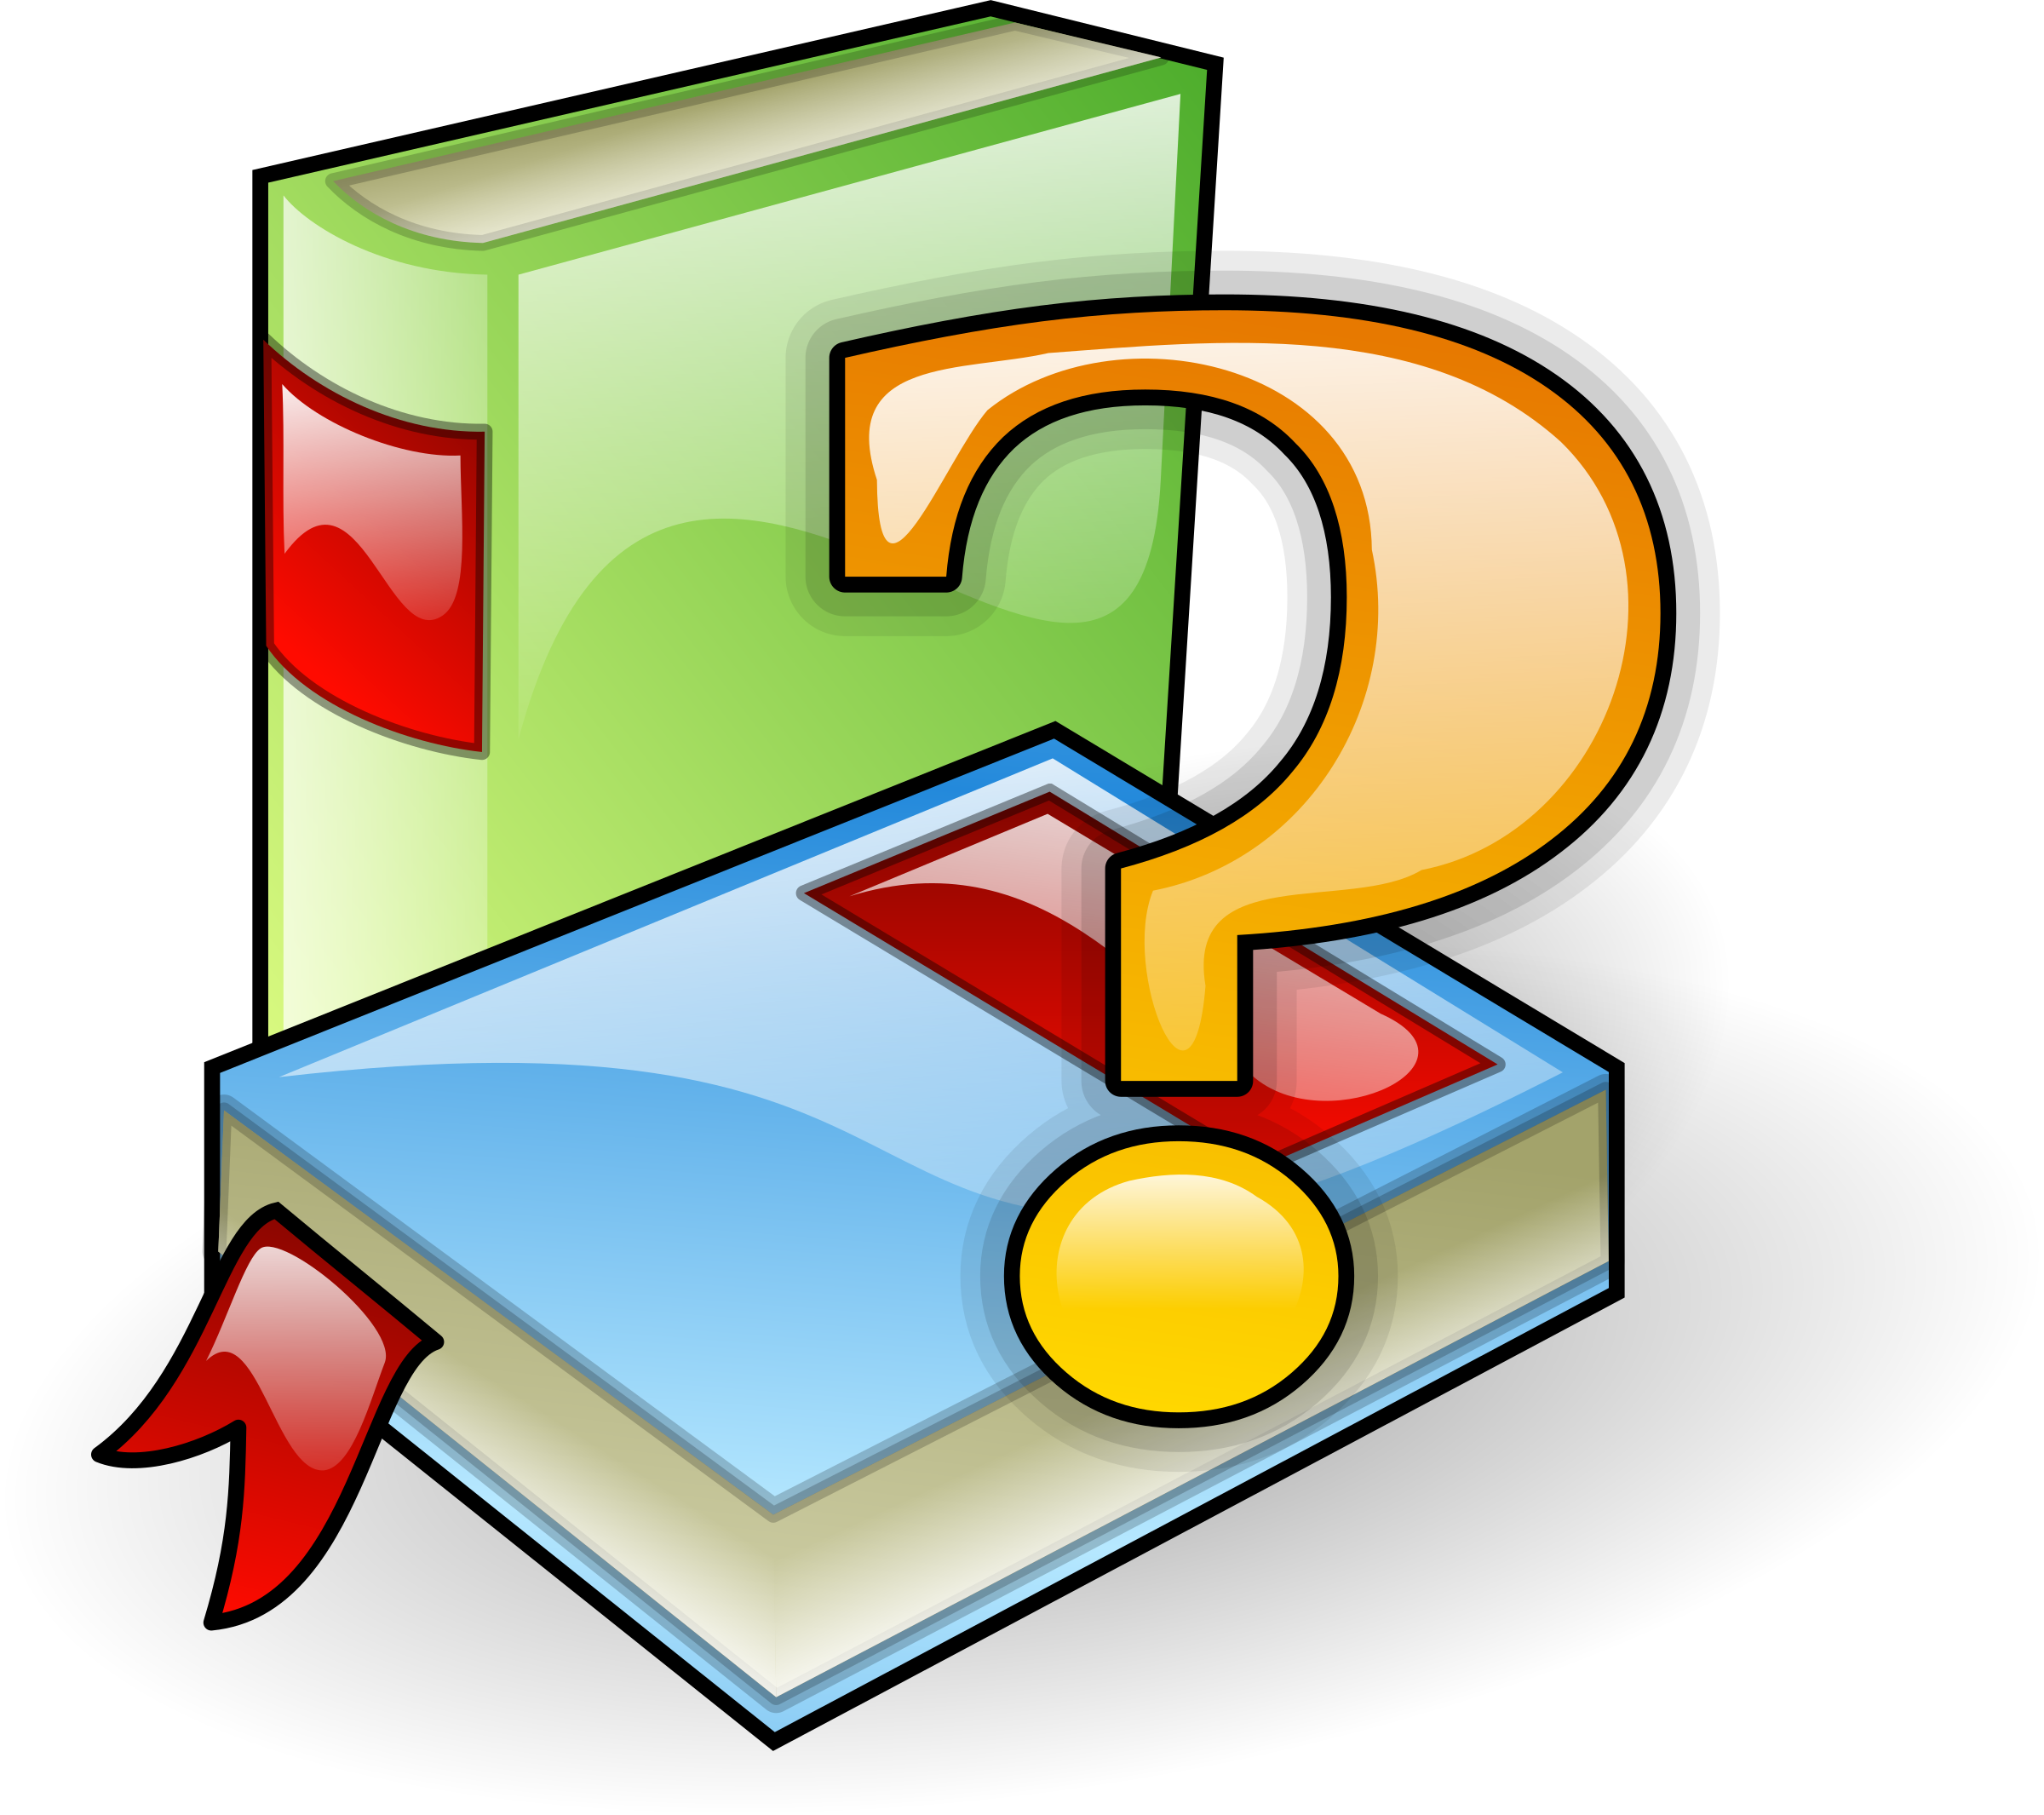 Books with question mark. Dictionary clipart research